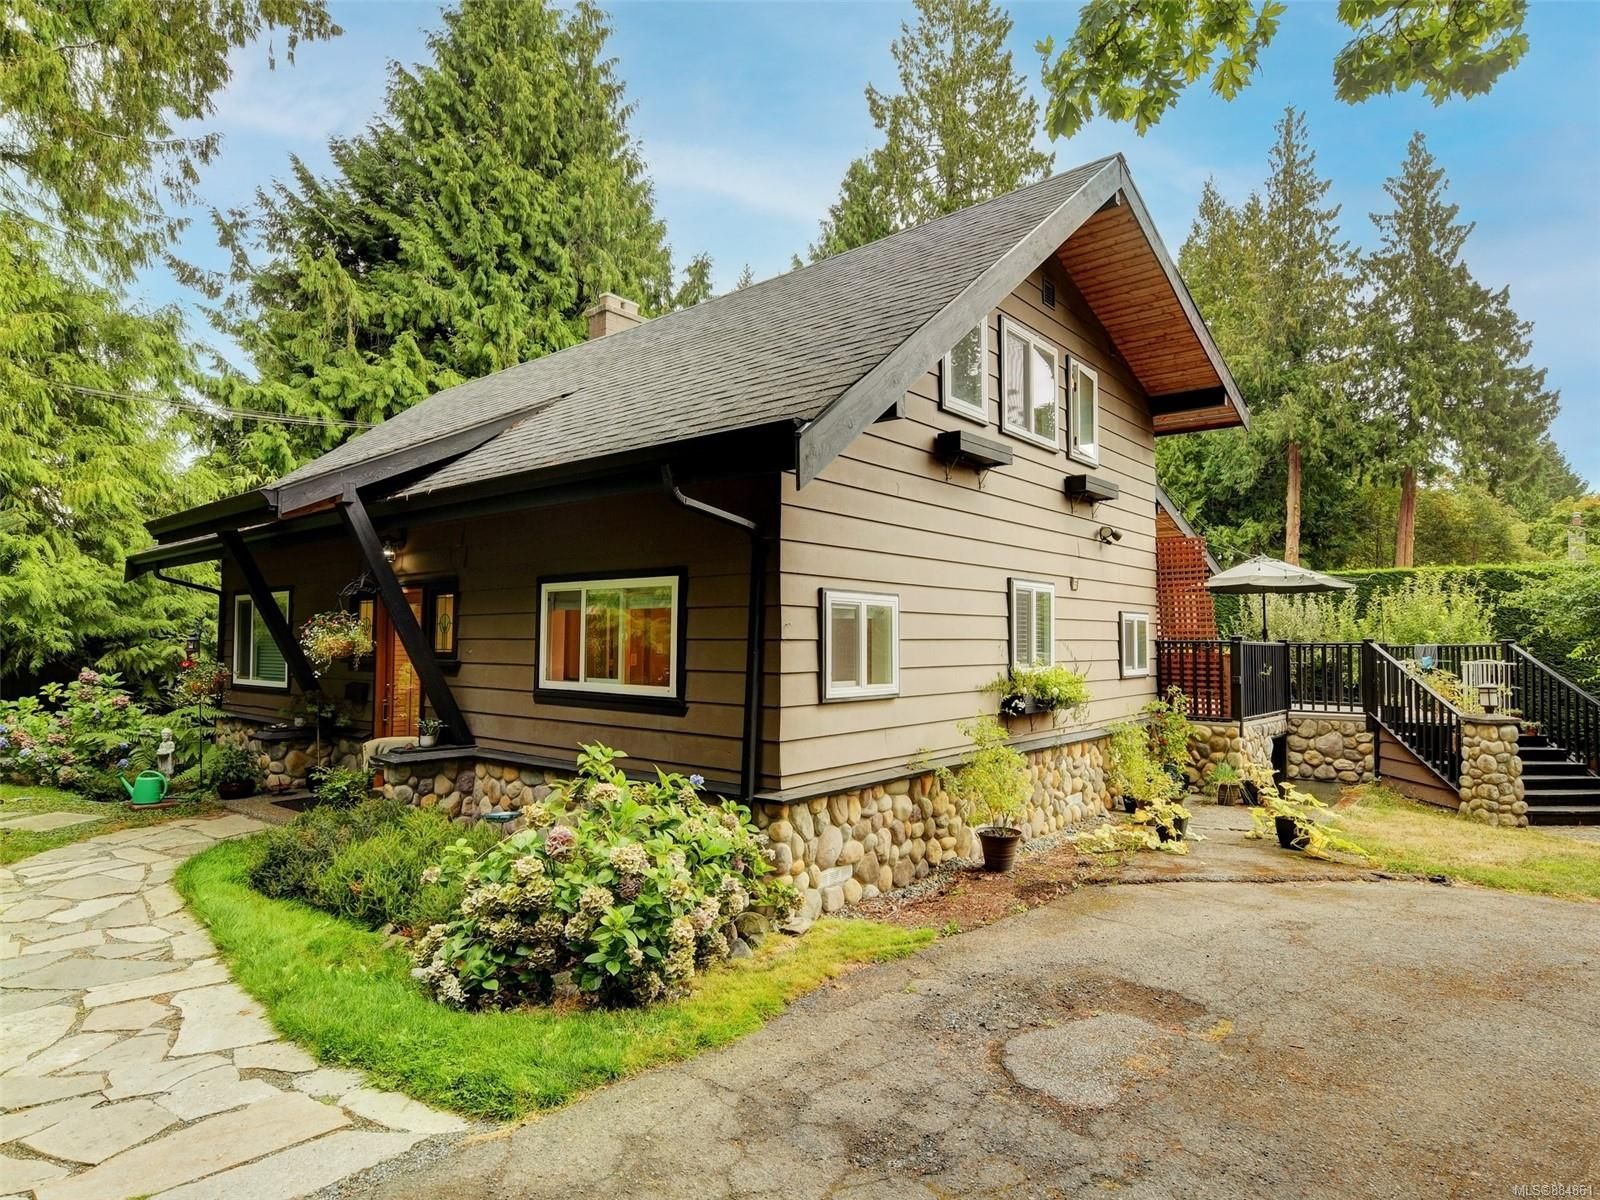 Main Photo: 768 Piedmont Dr in Saanich: SE Cordova Bay House for sale (Saanich East)  : MLS®# 884861